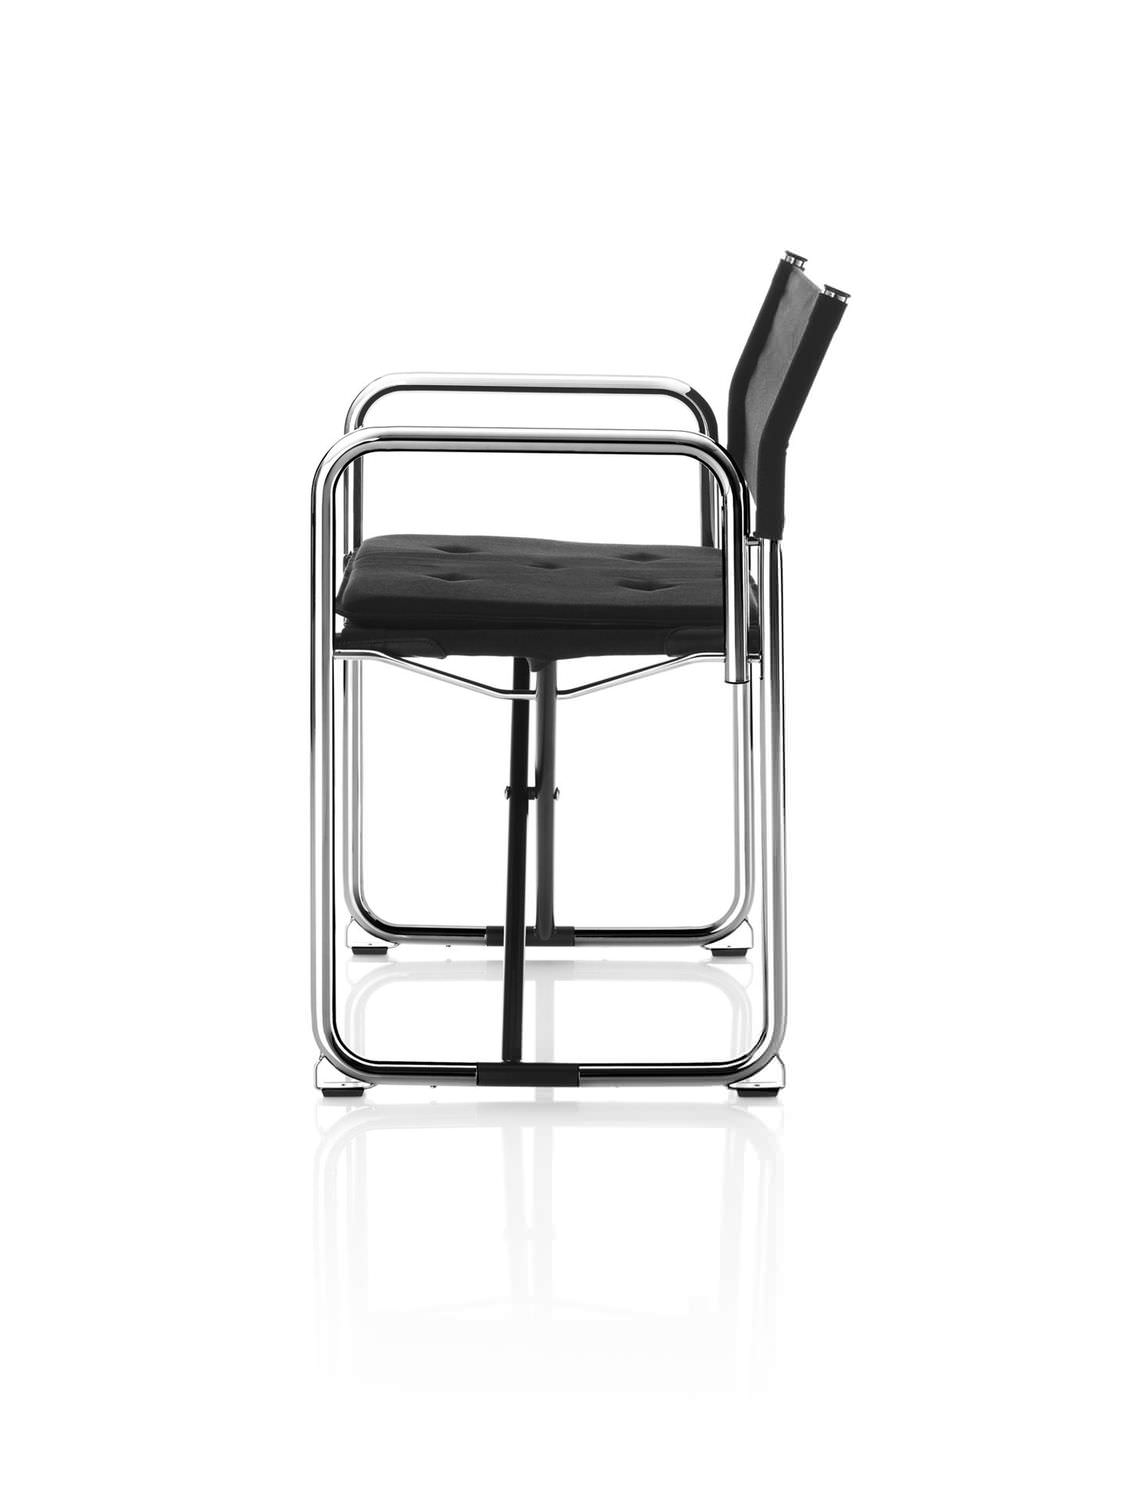 Möbel Lindau contemporary chair with armrests folding fabric x75 2 by